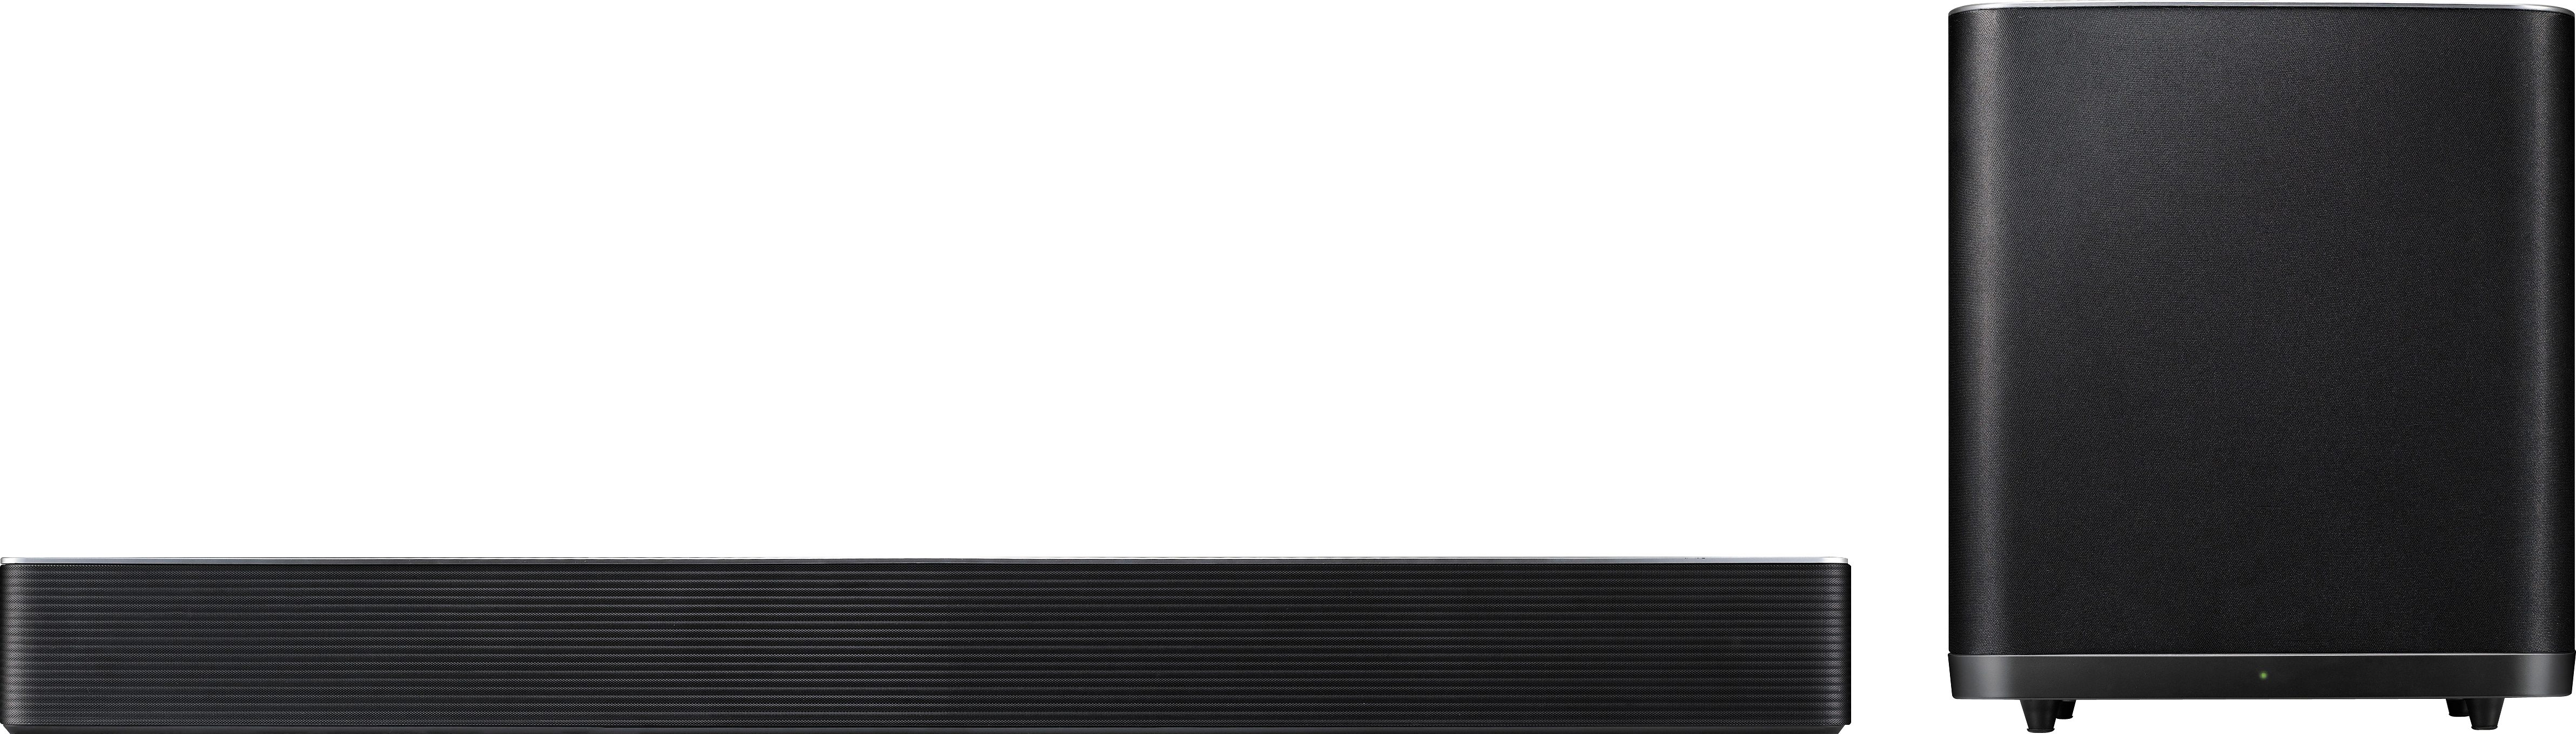 LG Music Flow LAC955M (HS9) Soundbar, Bluetooth, Multiroom, USB